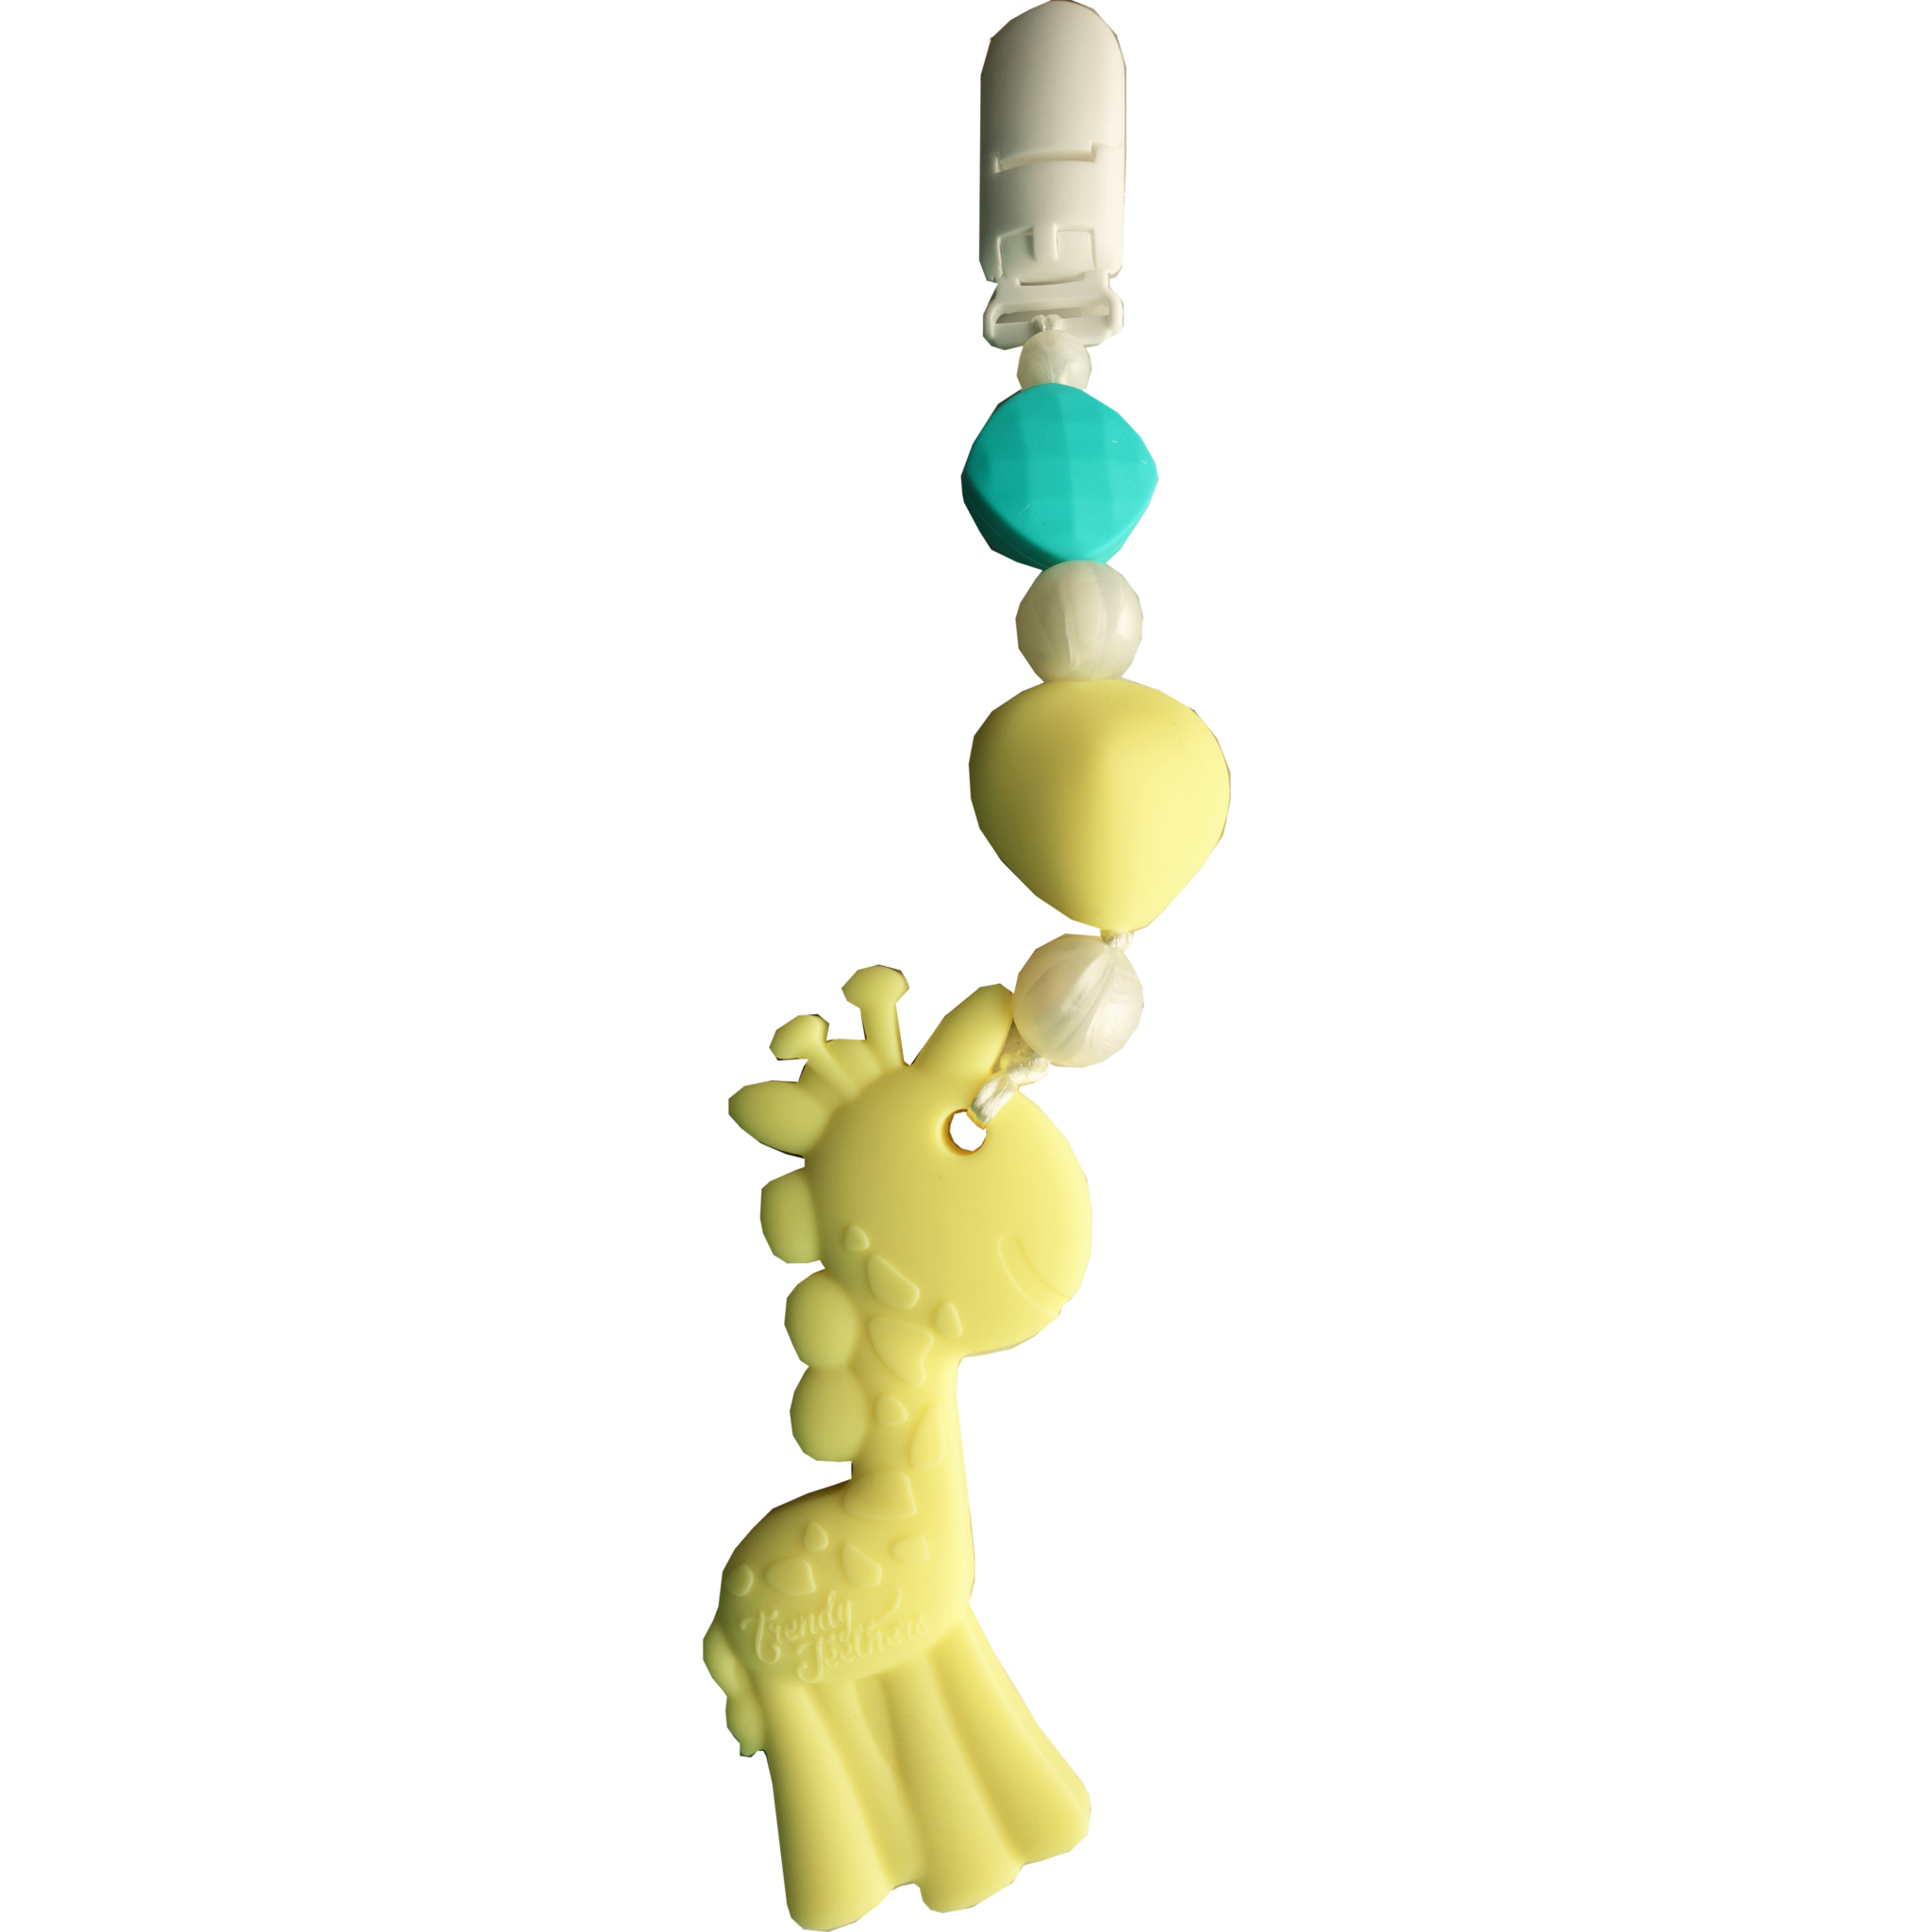 Gabriel Giraffe Wearable Clip-On Teether by Sleeping Baby Trendy Teethers are unique, one of a kind, teething necklaces, pacifier clips and attachable baby teethers designed by Stephanie Parker, the creator of the Zipadee-Zip!  Perfect as a sensory tool and to prevent scratching during nursing and great to soothe those little gums during teething. SUPER SAFE FOR BABY! Conforms to safety standards: ASTMF963 and 16CFR and is made from 100% silicone with nylon string for the necklaces and ribbon for the teethers and pacifier clips. No BPA,phalates, PVC, cadmium, or lead. Only attach to clothing. Do not attach to cords, bands or belts that could cause a strangulation hazard. Necklaces are to be worn by adults only for babies to chew on. Do not place around a baby's neck. Easily cleaned with soap and water! This is not a toy or a traditional teether.  We'd love to see real mommas and babies stylin' with their Trendy Teethers(tm) so be sure to share your photo on our facebook page here: https://www.facebook.com/sleepingbabyinc/ -  Gabriel Giraffe  Wearable Clip-On Teether by Sleeping Baby